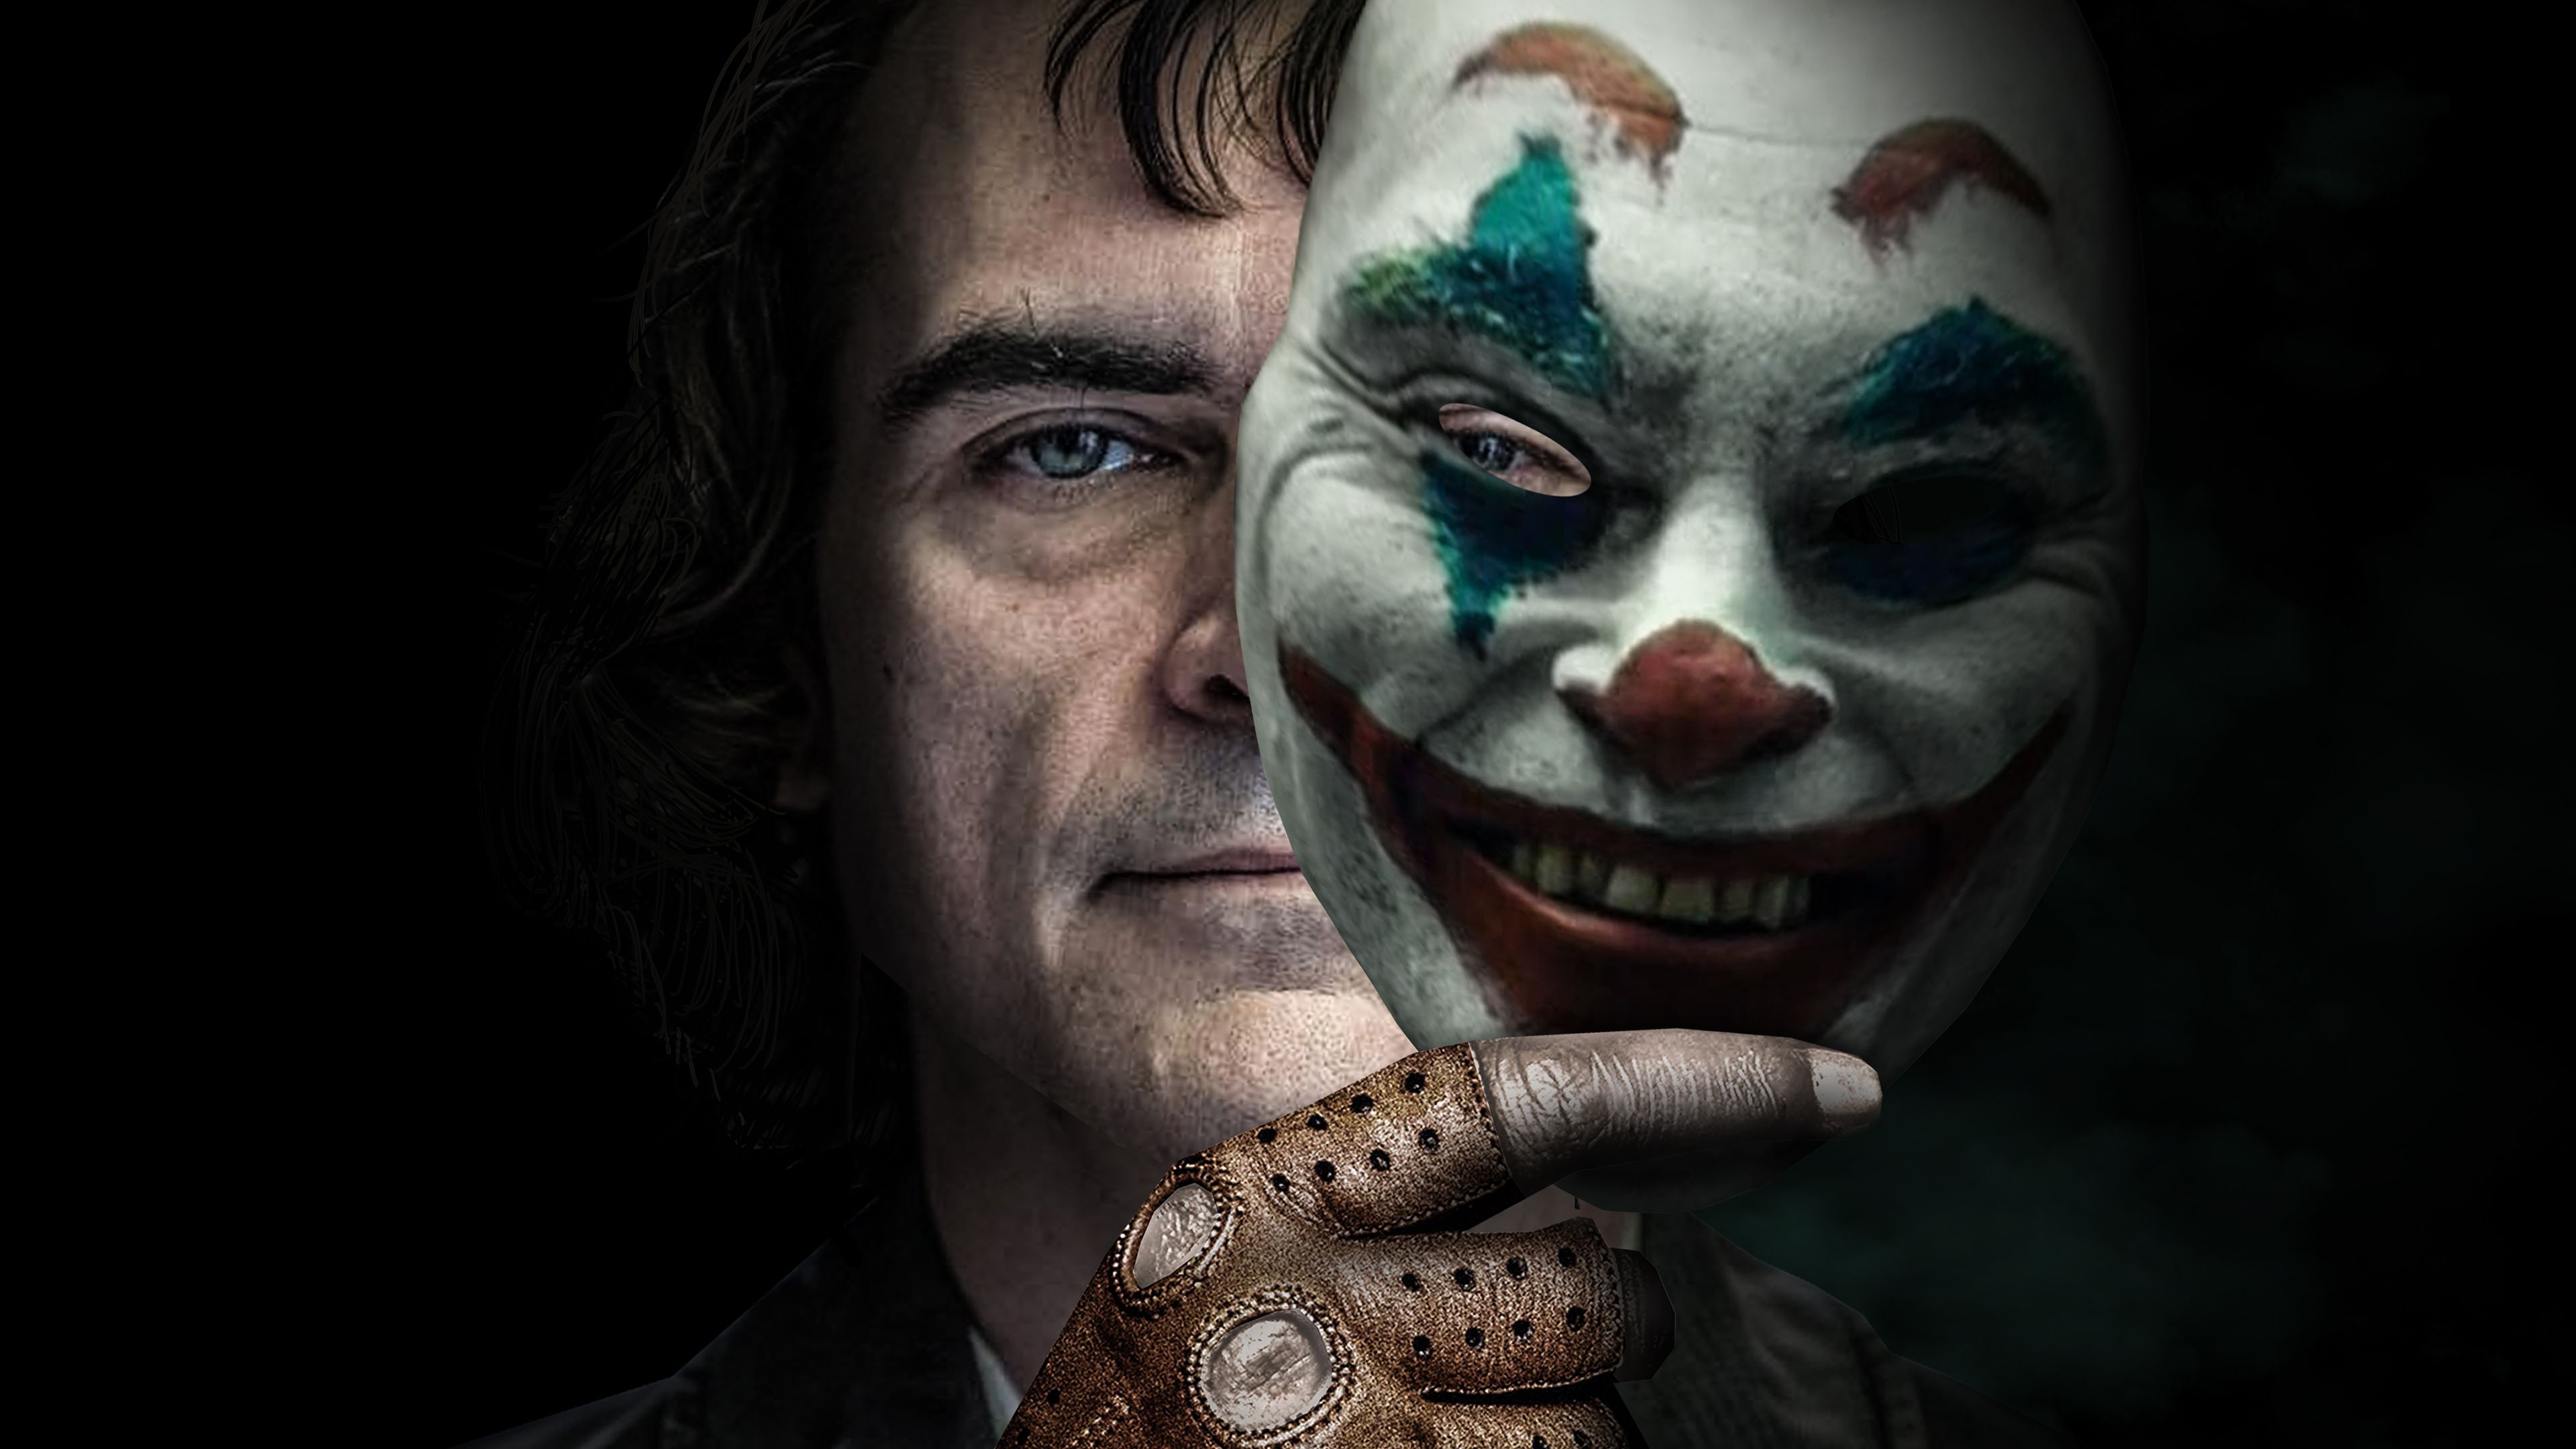 Joker Movie 2019 Collection See All Wallpapers